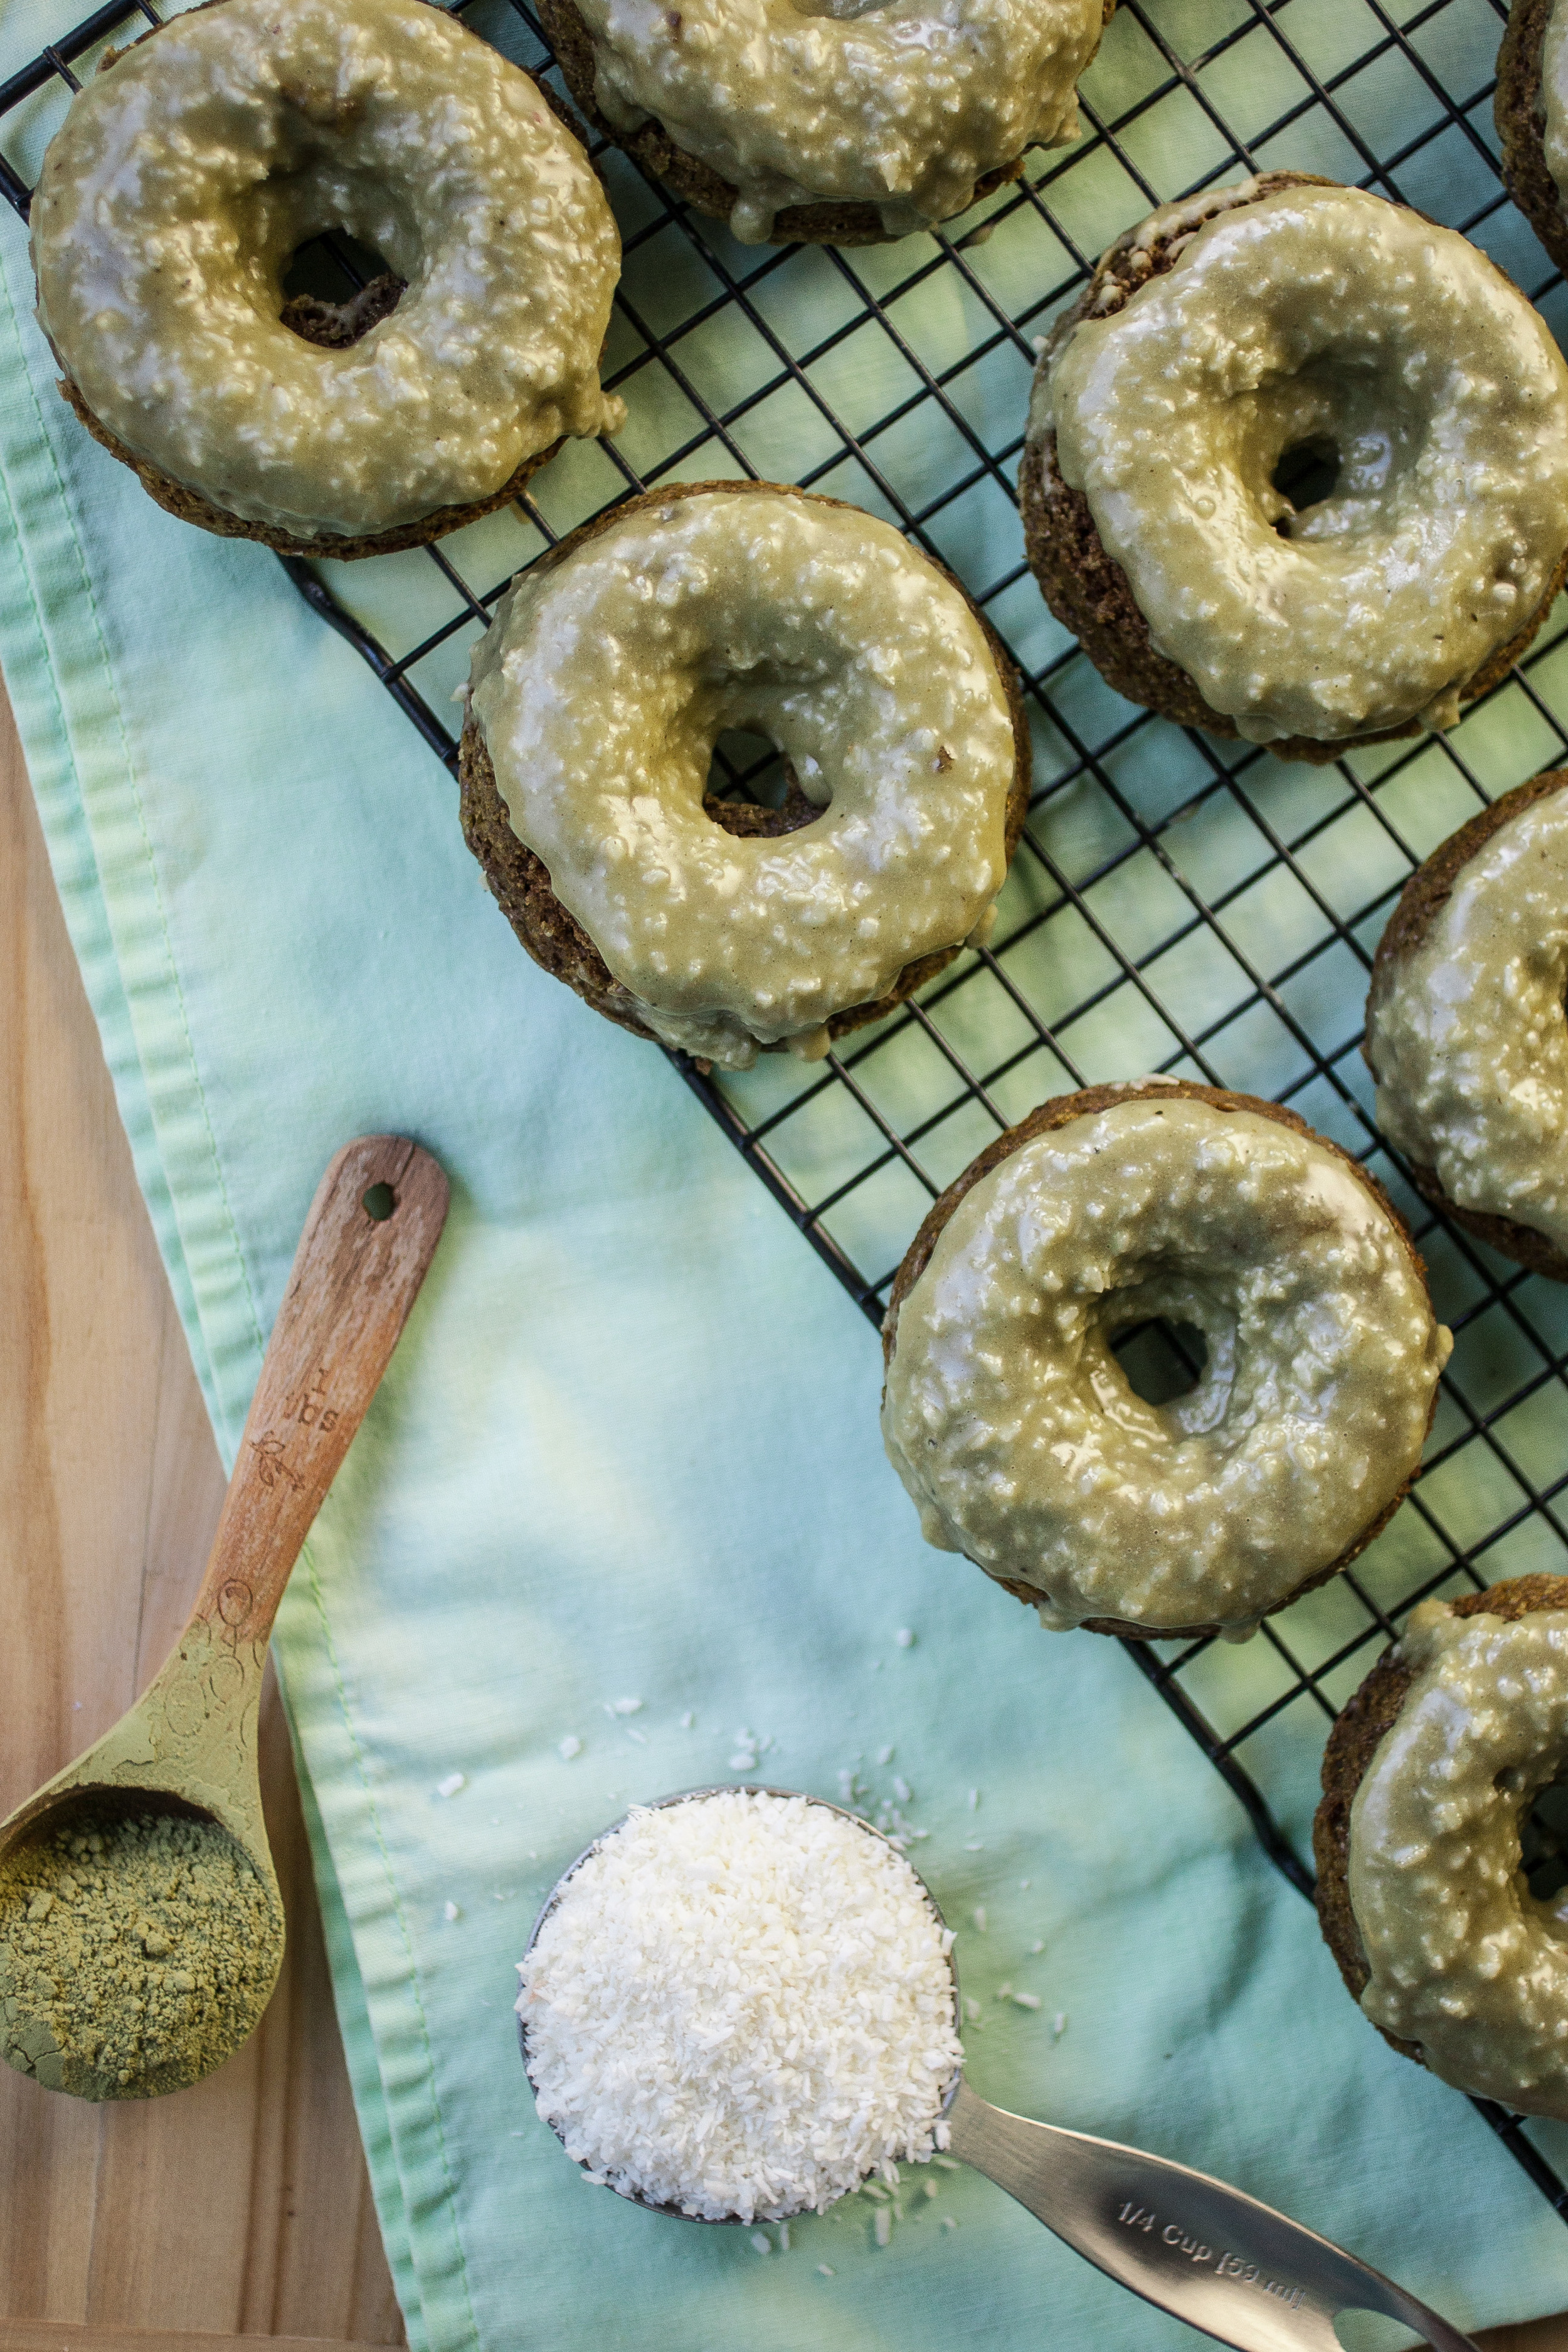 Produce On Parade - Green Tea Doughnuts w/ Crunchy Coconut Glaze - Baked doughnuts with powdered green tea mixed right in the batter! Adorned with a sweet and crunchy coconut-nutmeg glaze, these are easy to make and brimming with green tea flavor. A perfect and unique treat for St. Patrick's Days!